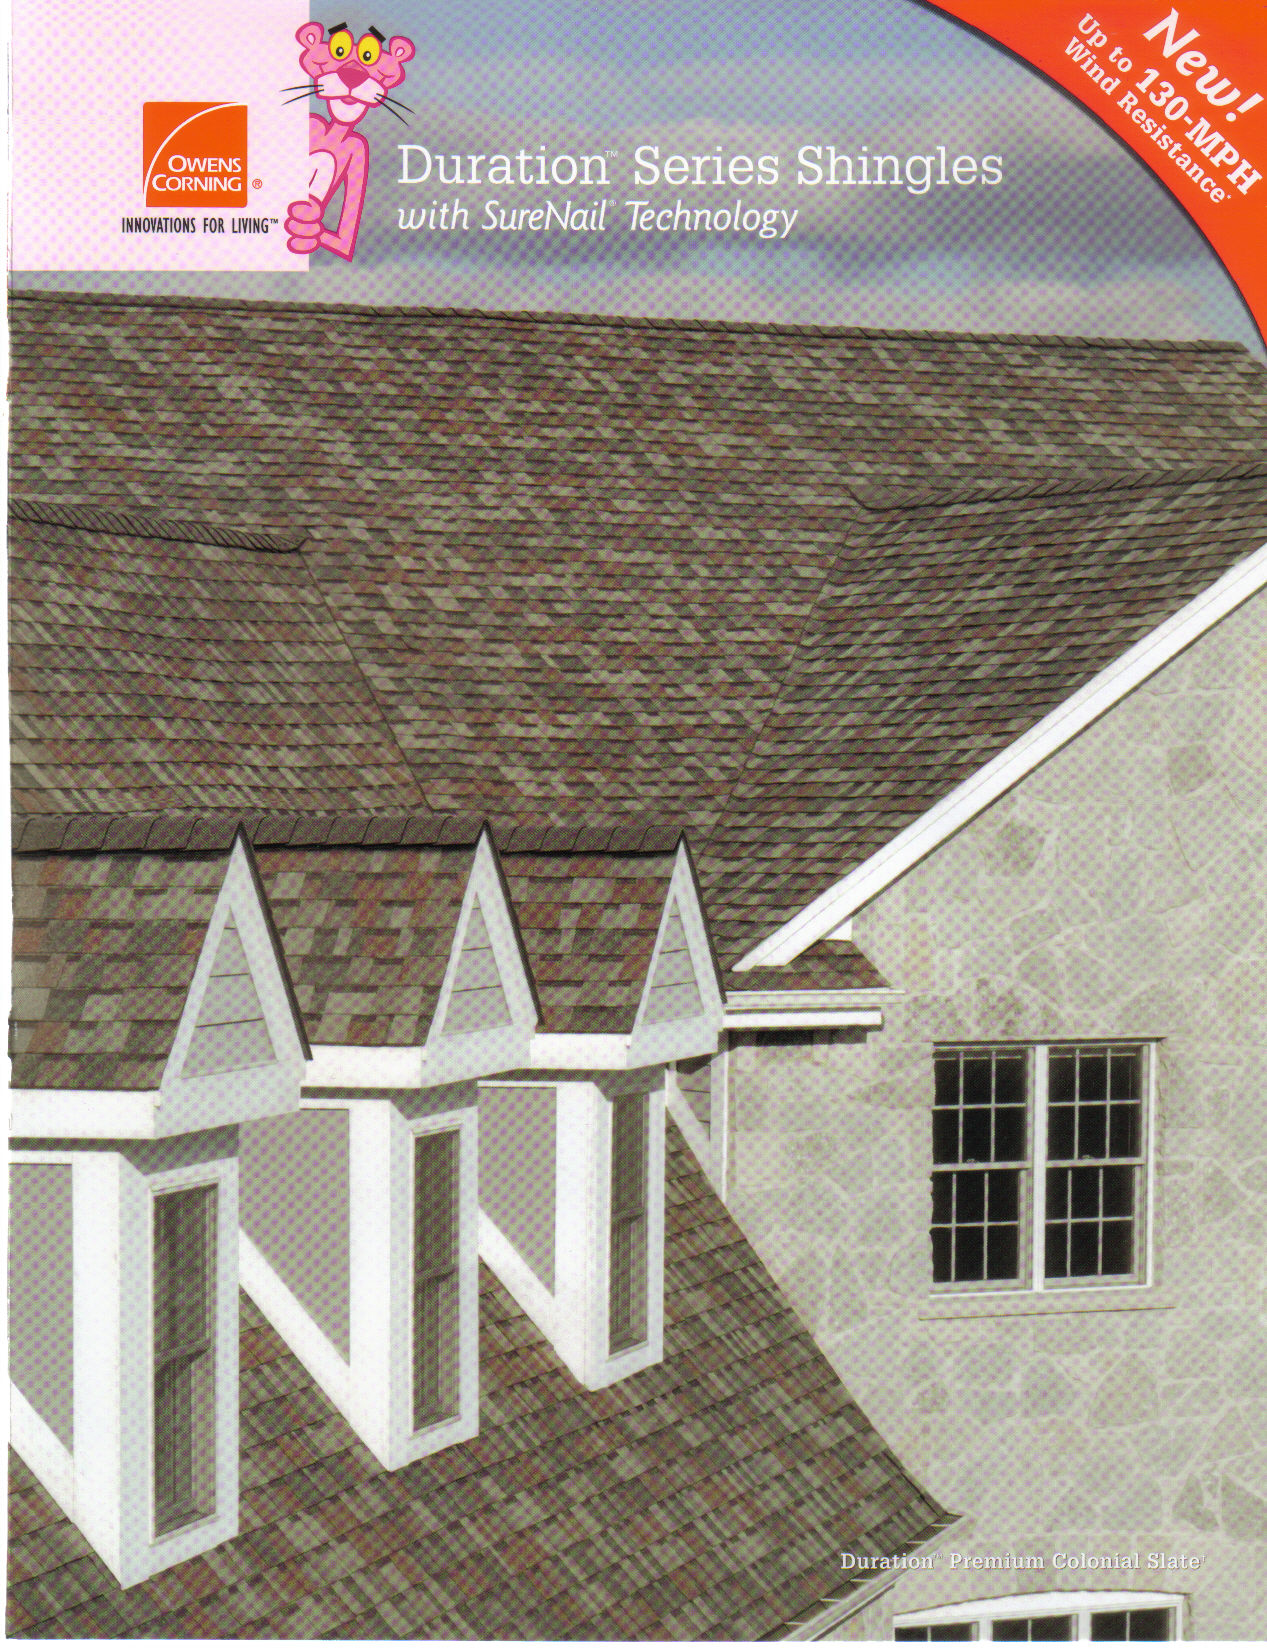 Duration Series Shingles Wiegand Roofing